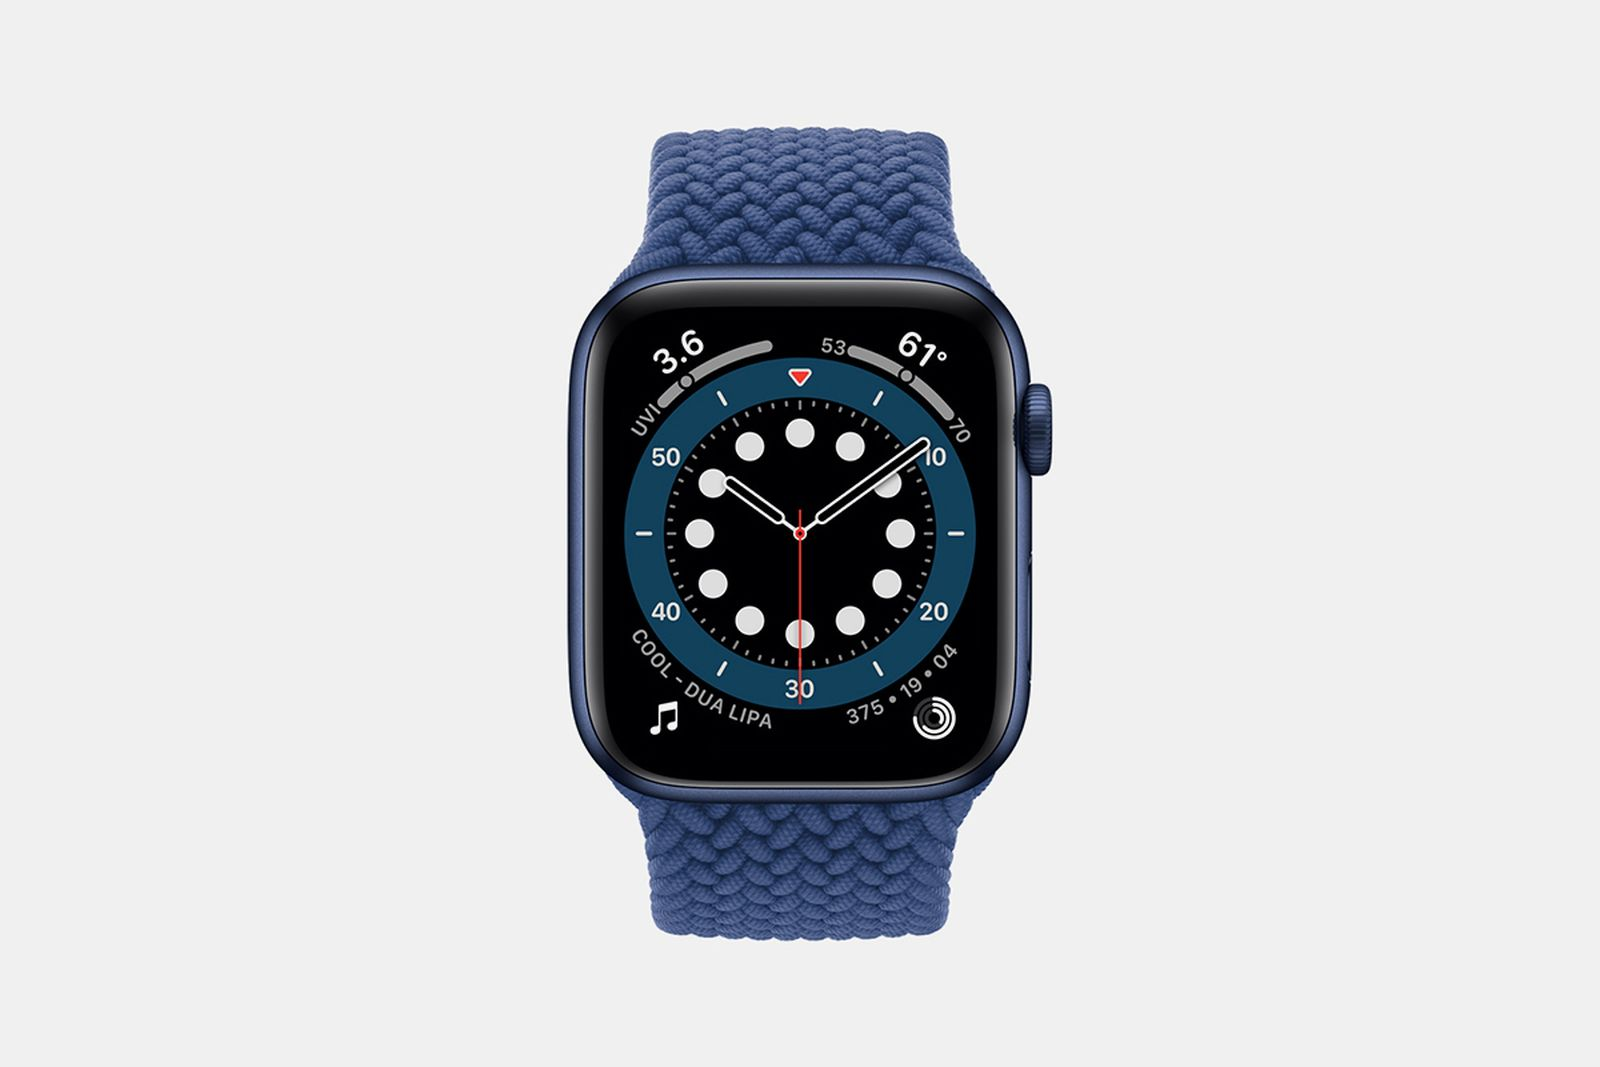 apple-watch-series-6-ipad-air-01